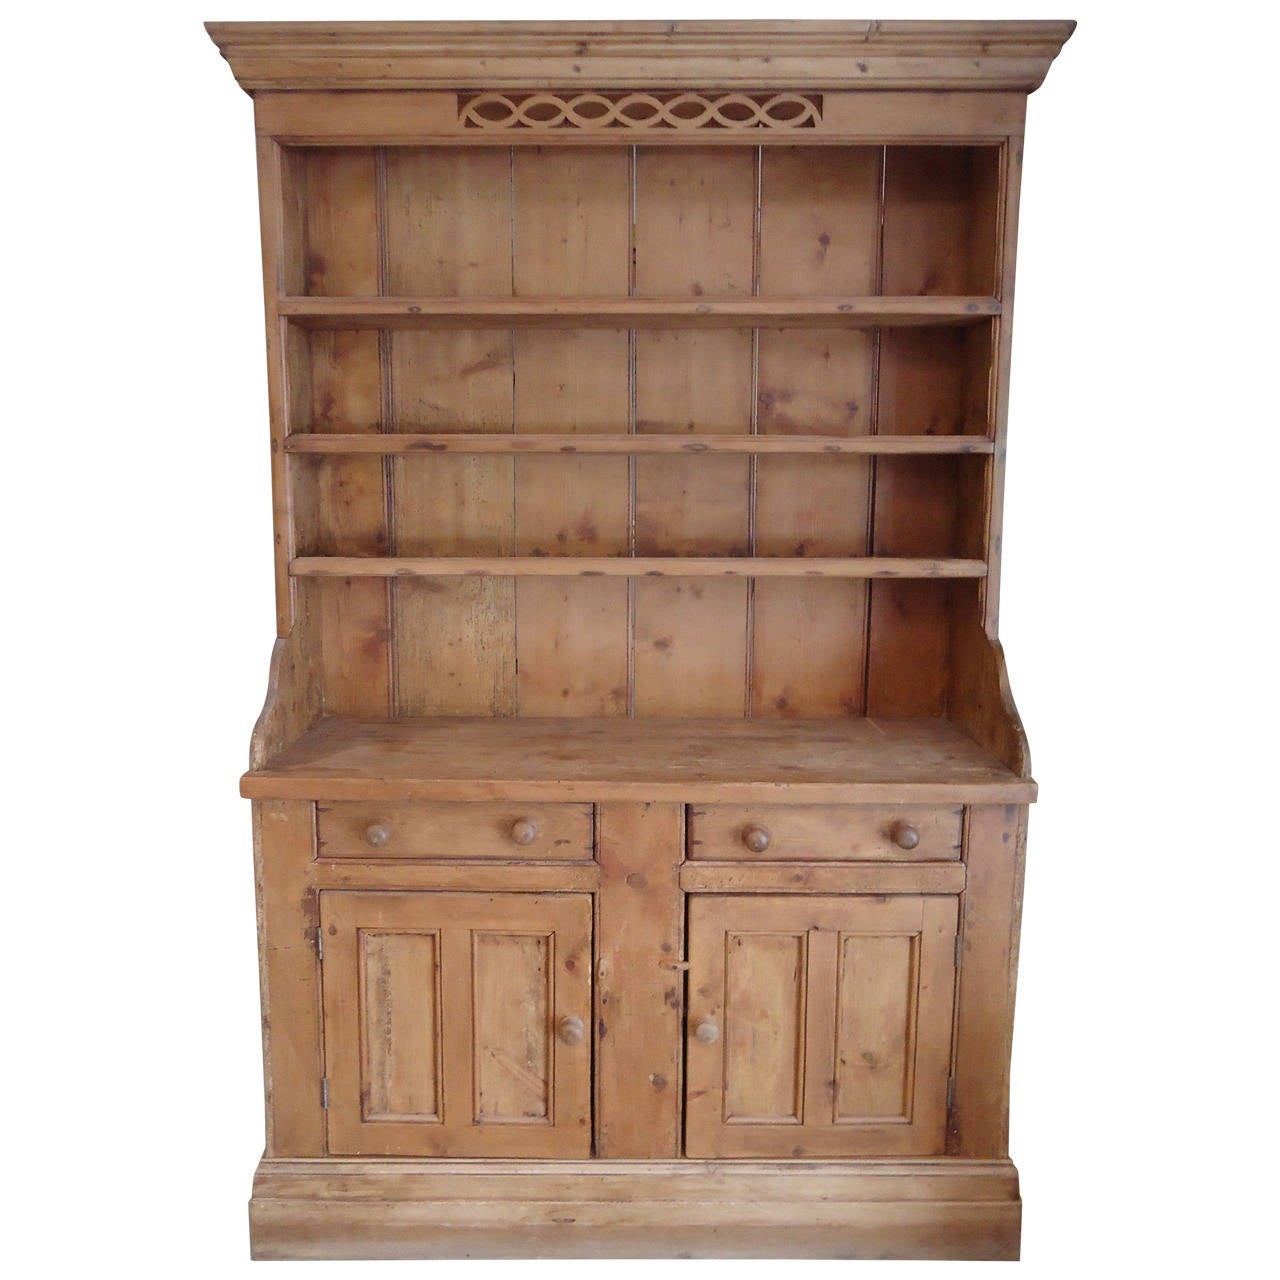 Rustic Irish Natural Wood Hutch Cabinet At 1stdibs